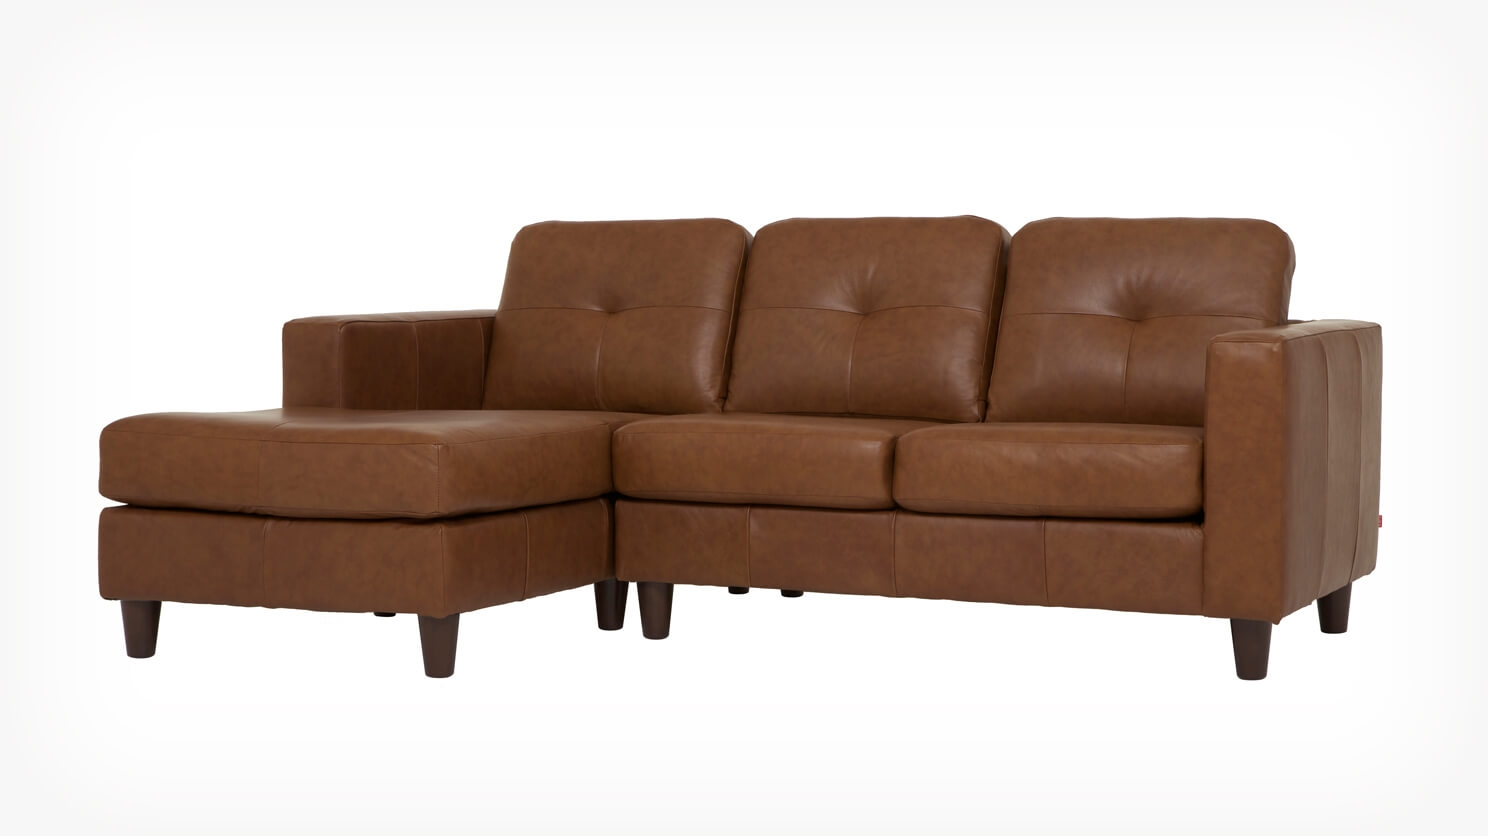 eq3 stella sofa dimensions morty chenille bed sectional with right chaise brown solo 2 piece leather